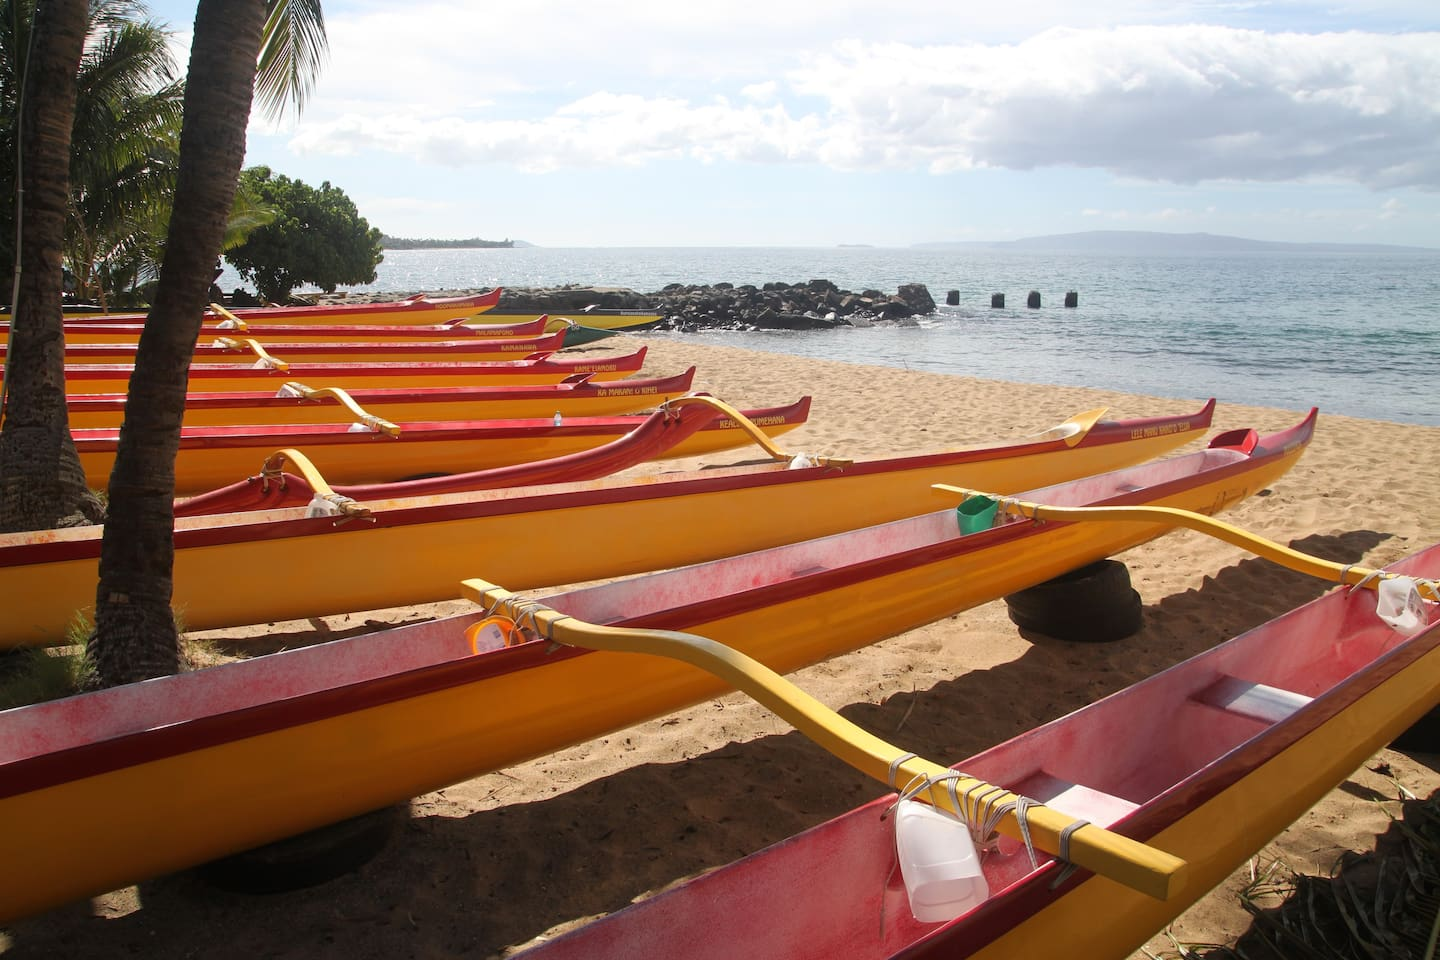 your morning walk can take you to see the famous red and yellow canoes maybe on the water....